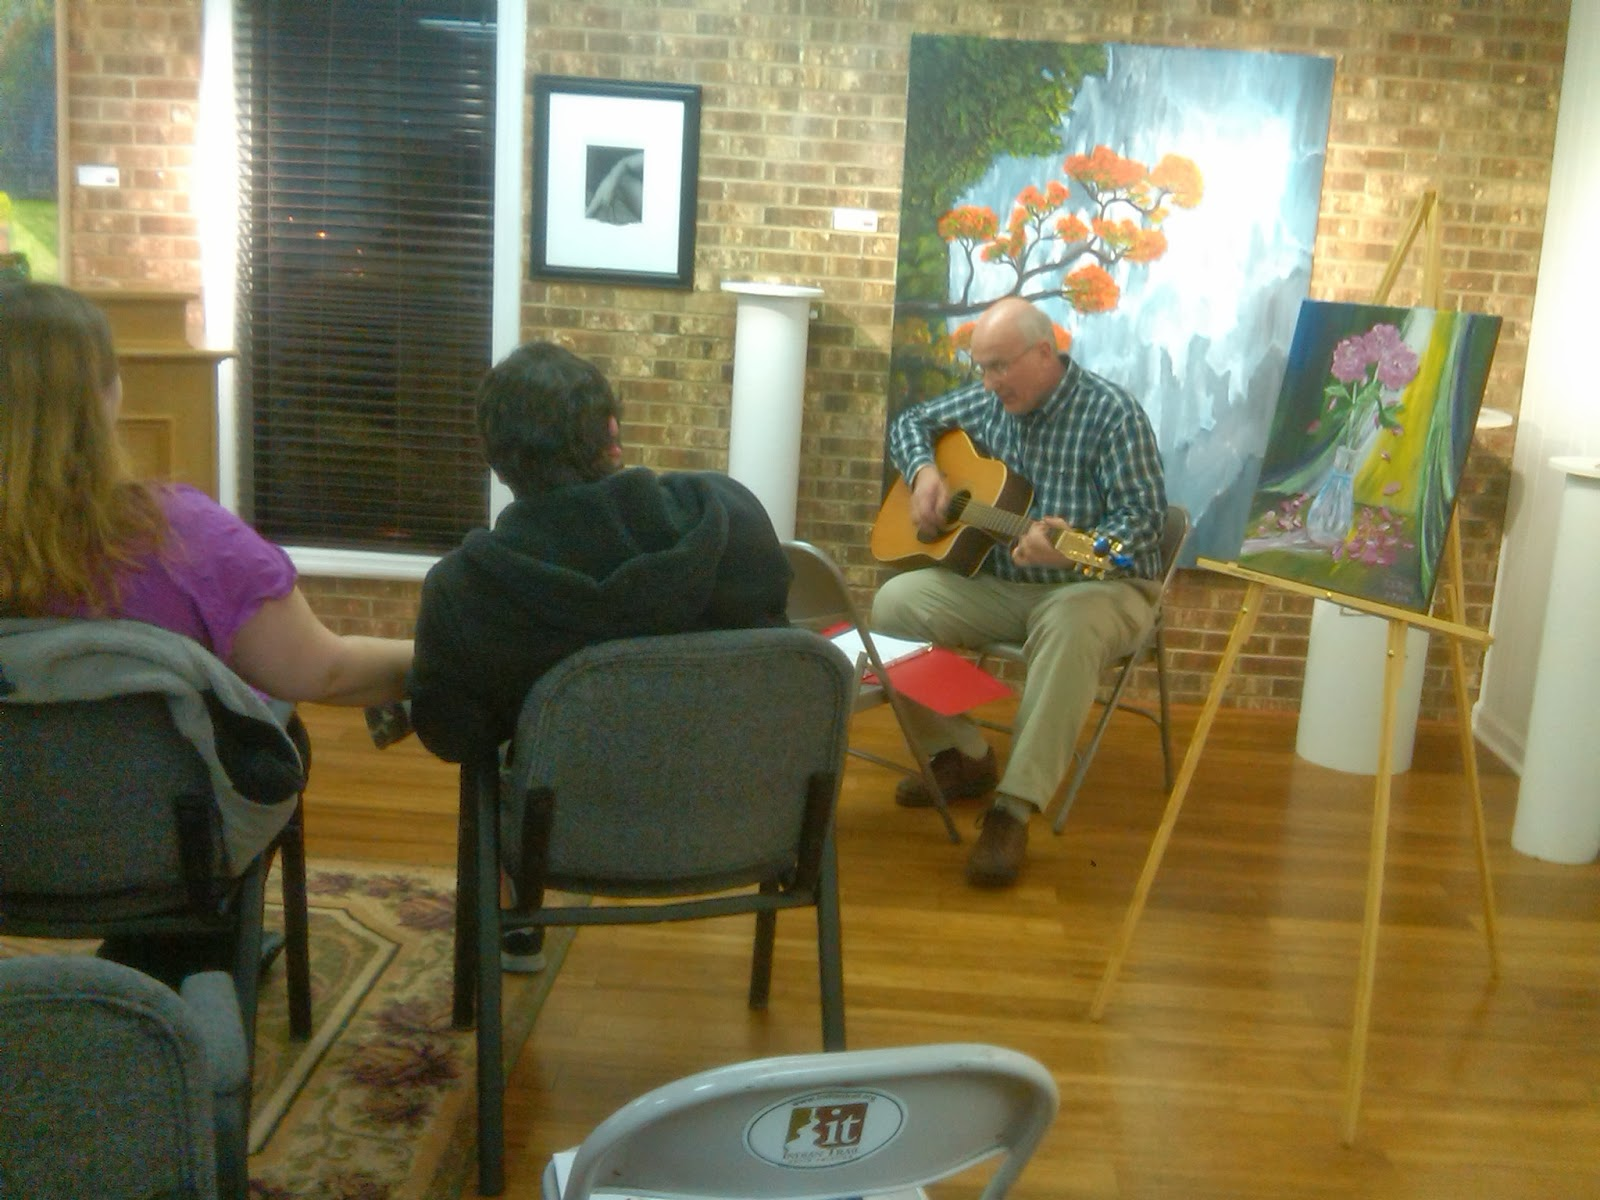 poetry reading, dwight roth, art, poetry